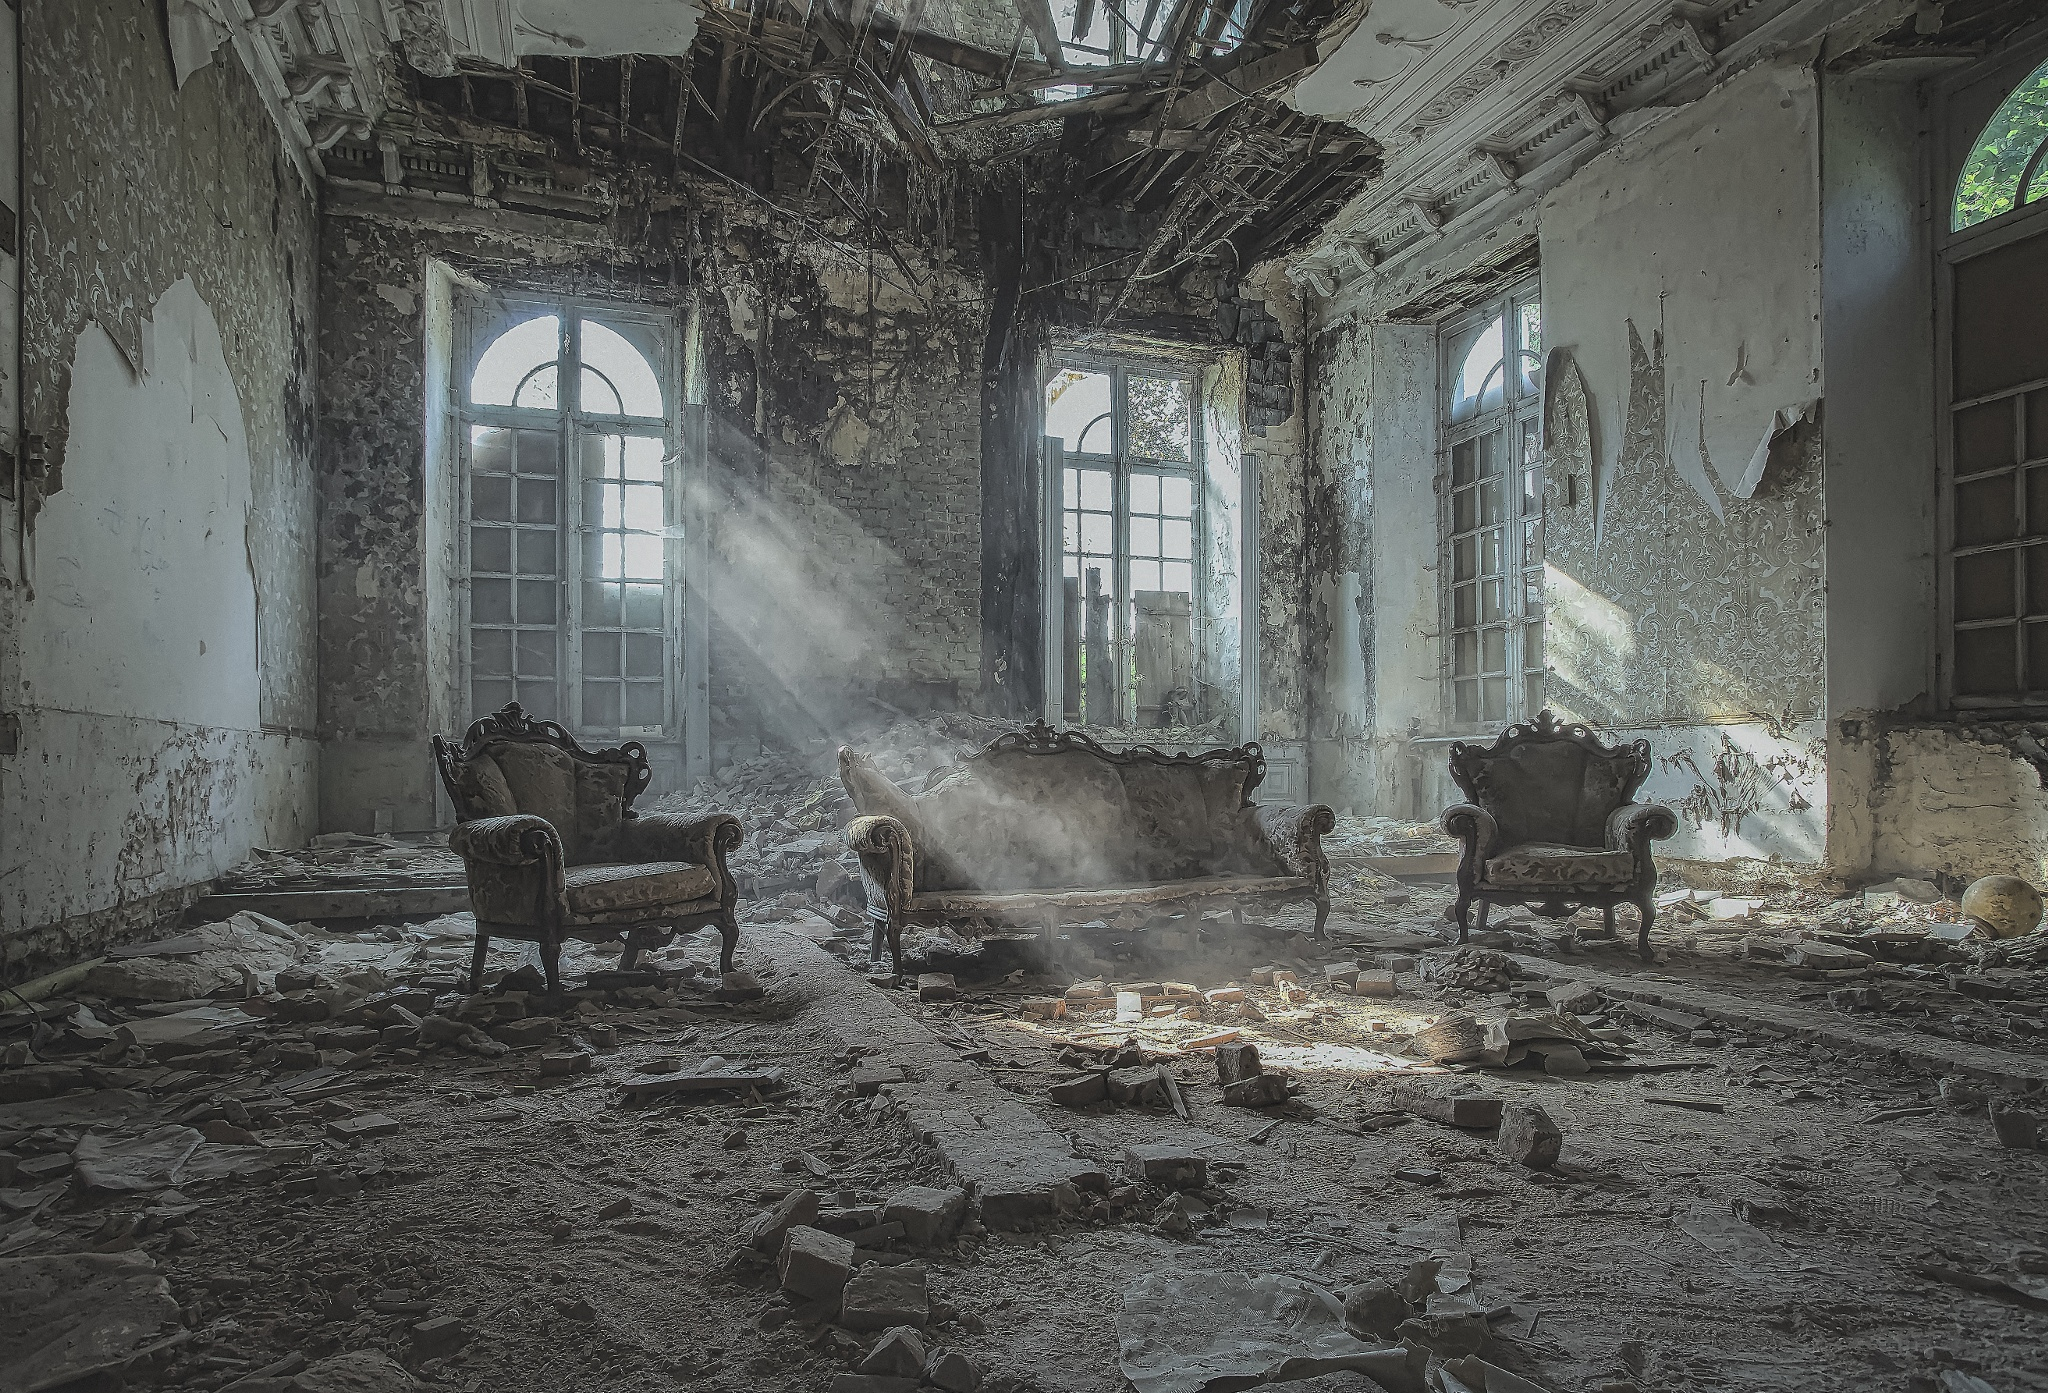 Best of 2014: Top 10 Urban Exploration Photos